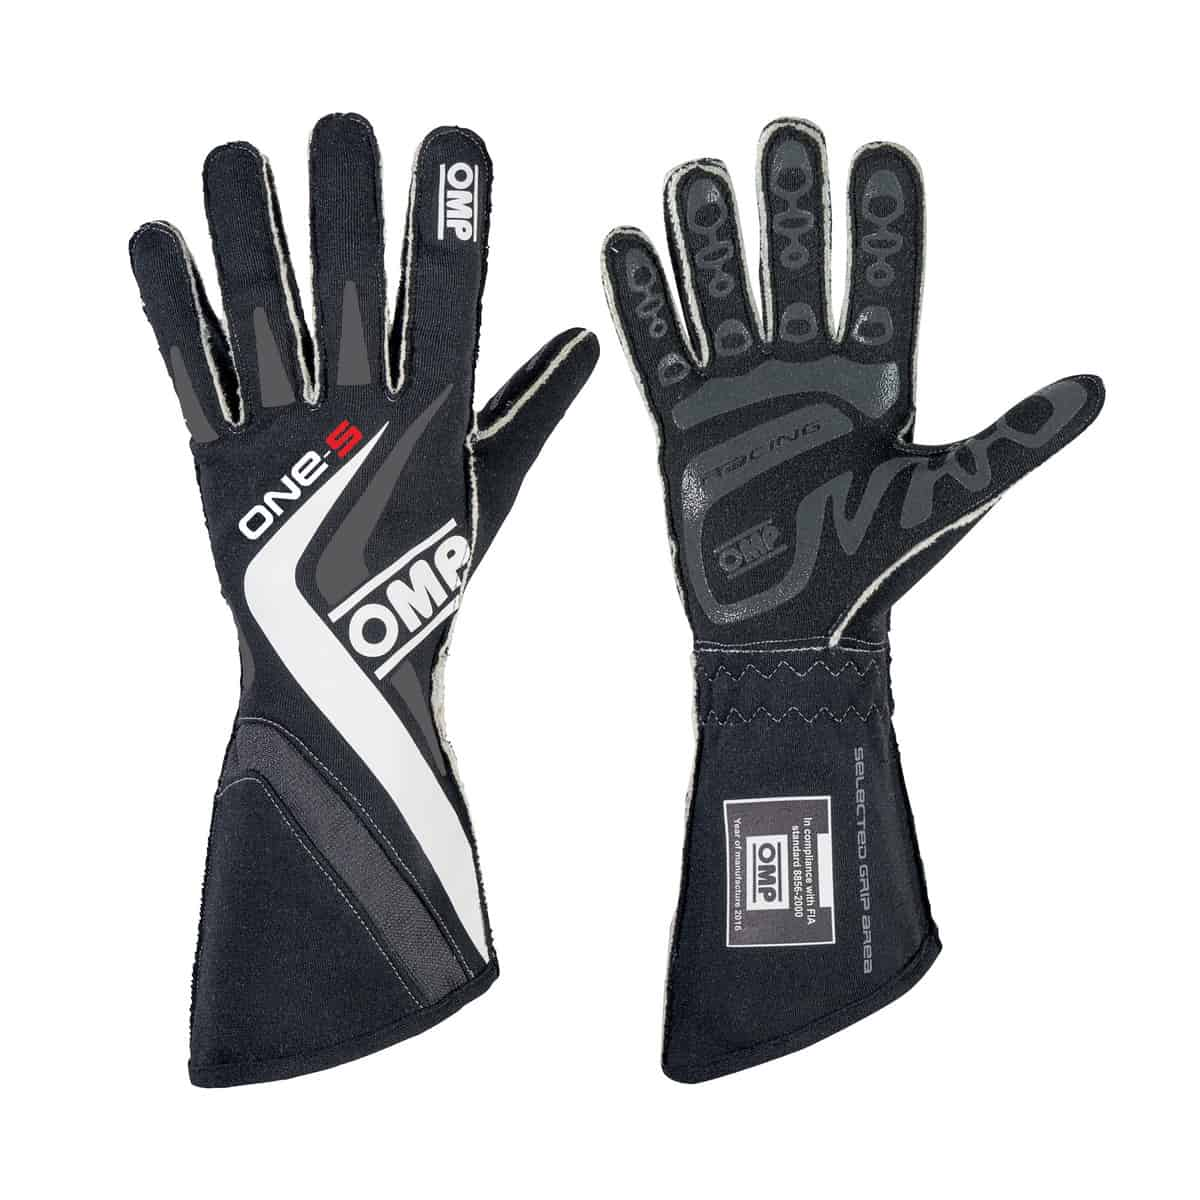 OMP ONE-S 2016 Racing Gloves